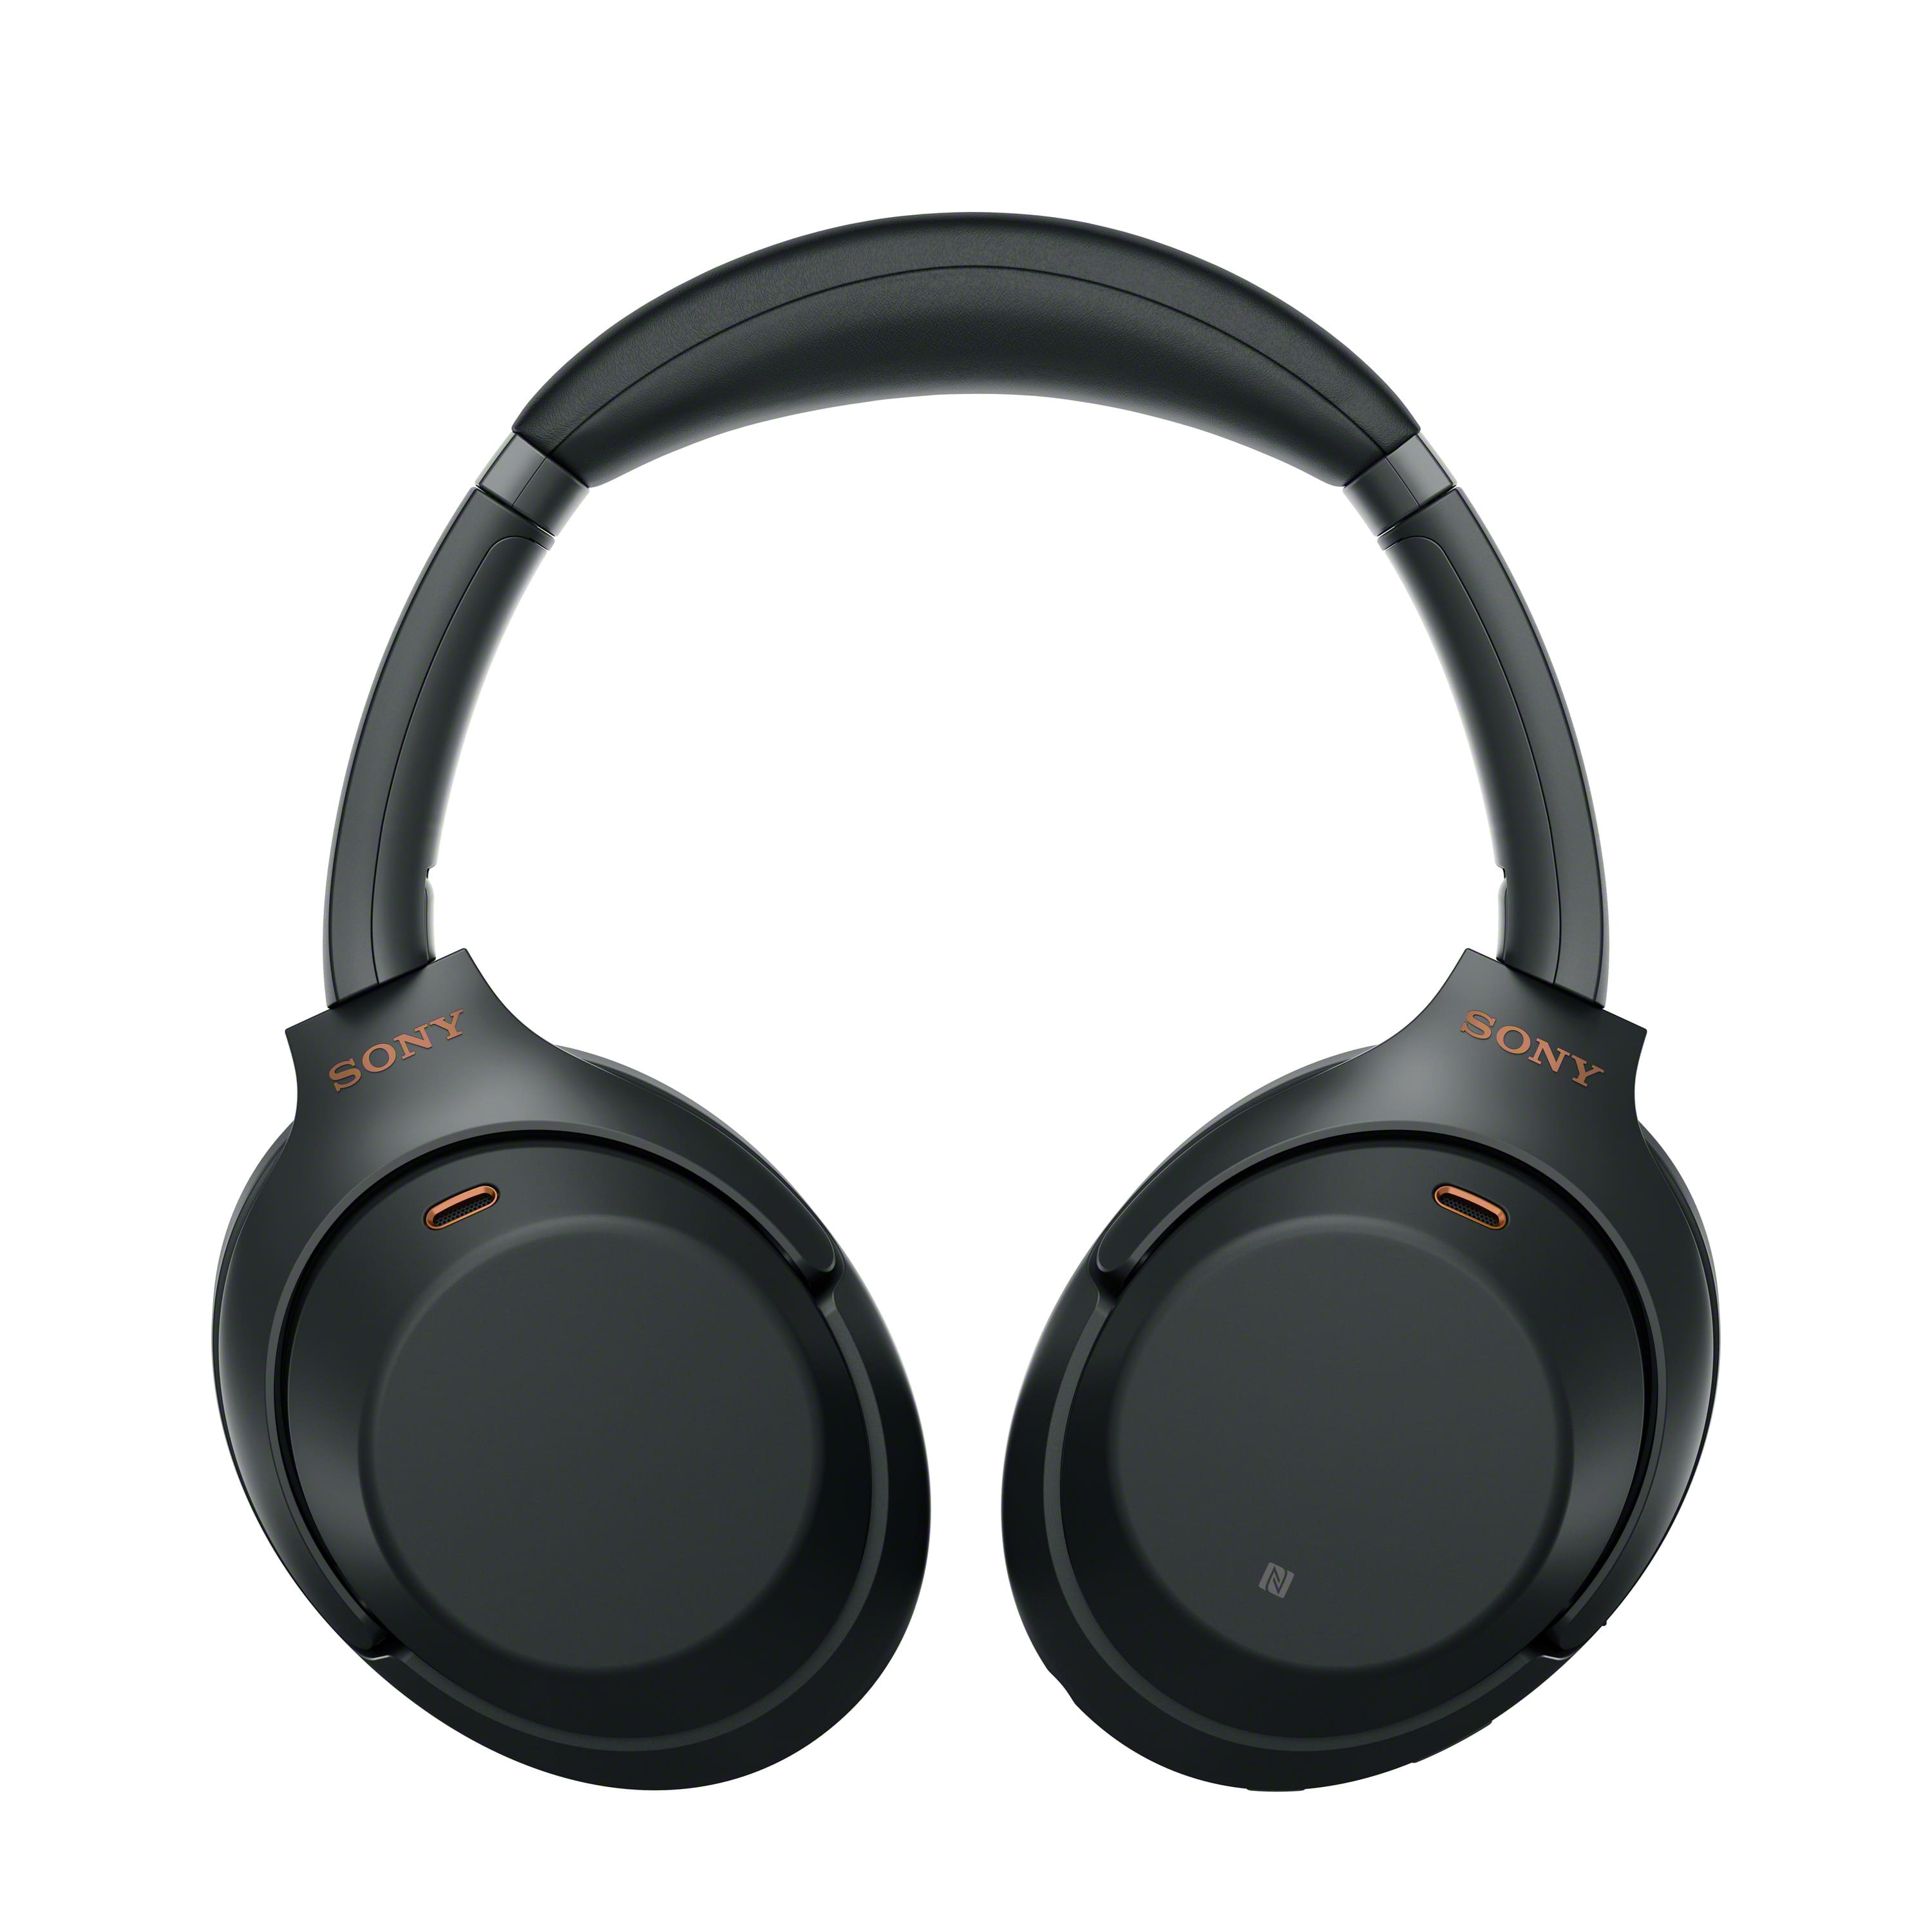 Sony WH-1000XM3 Wireless Noise Canceling Over-Ear Headphones - Refurbished - $200